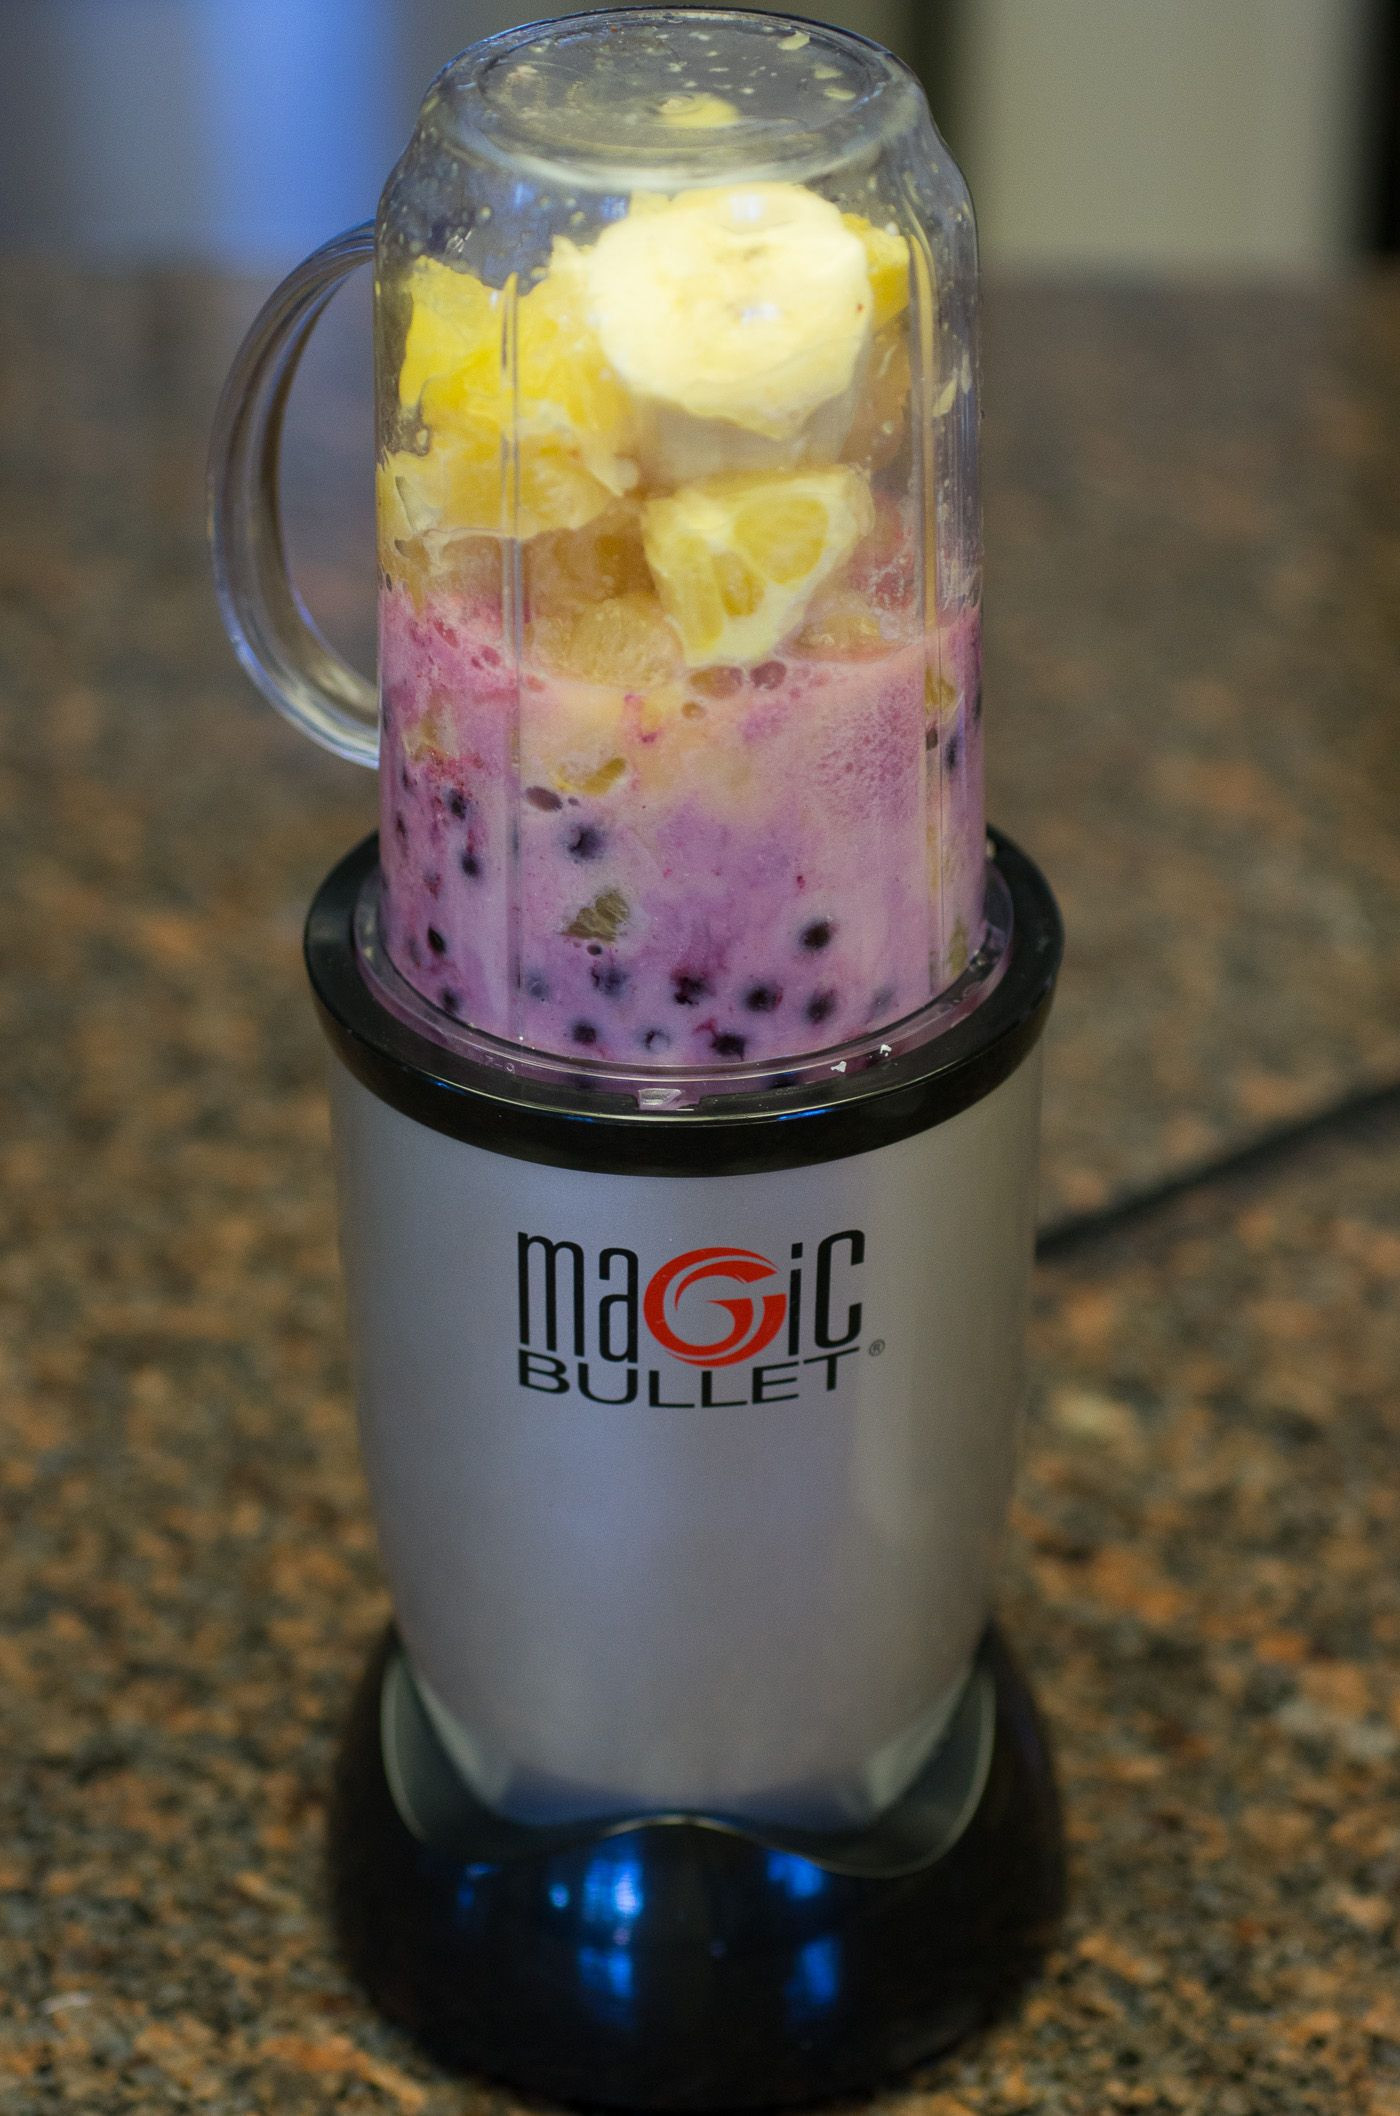 Magic Bullet Smoothie Recipes  How To Make Juicing for Health A Daily Habit